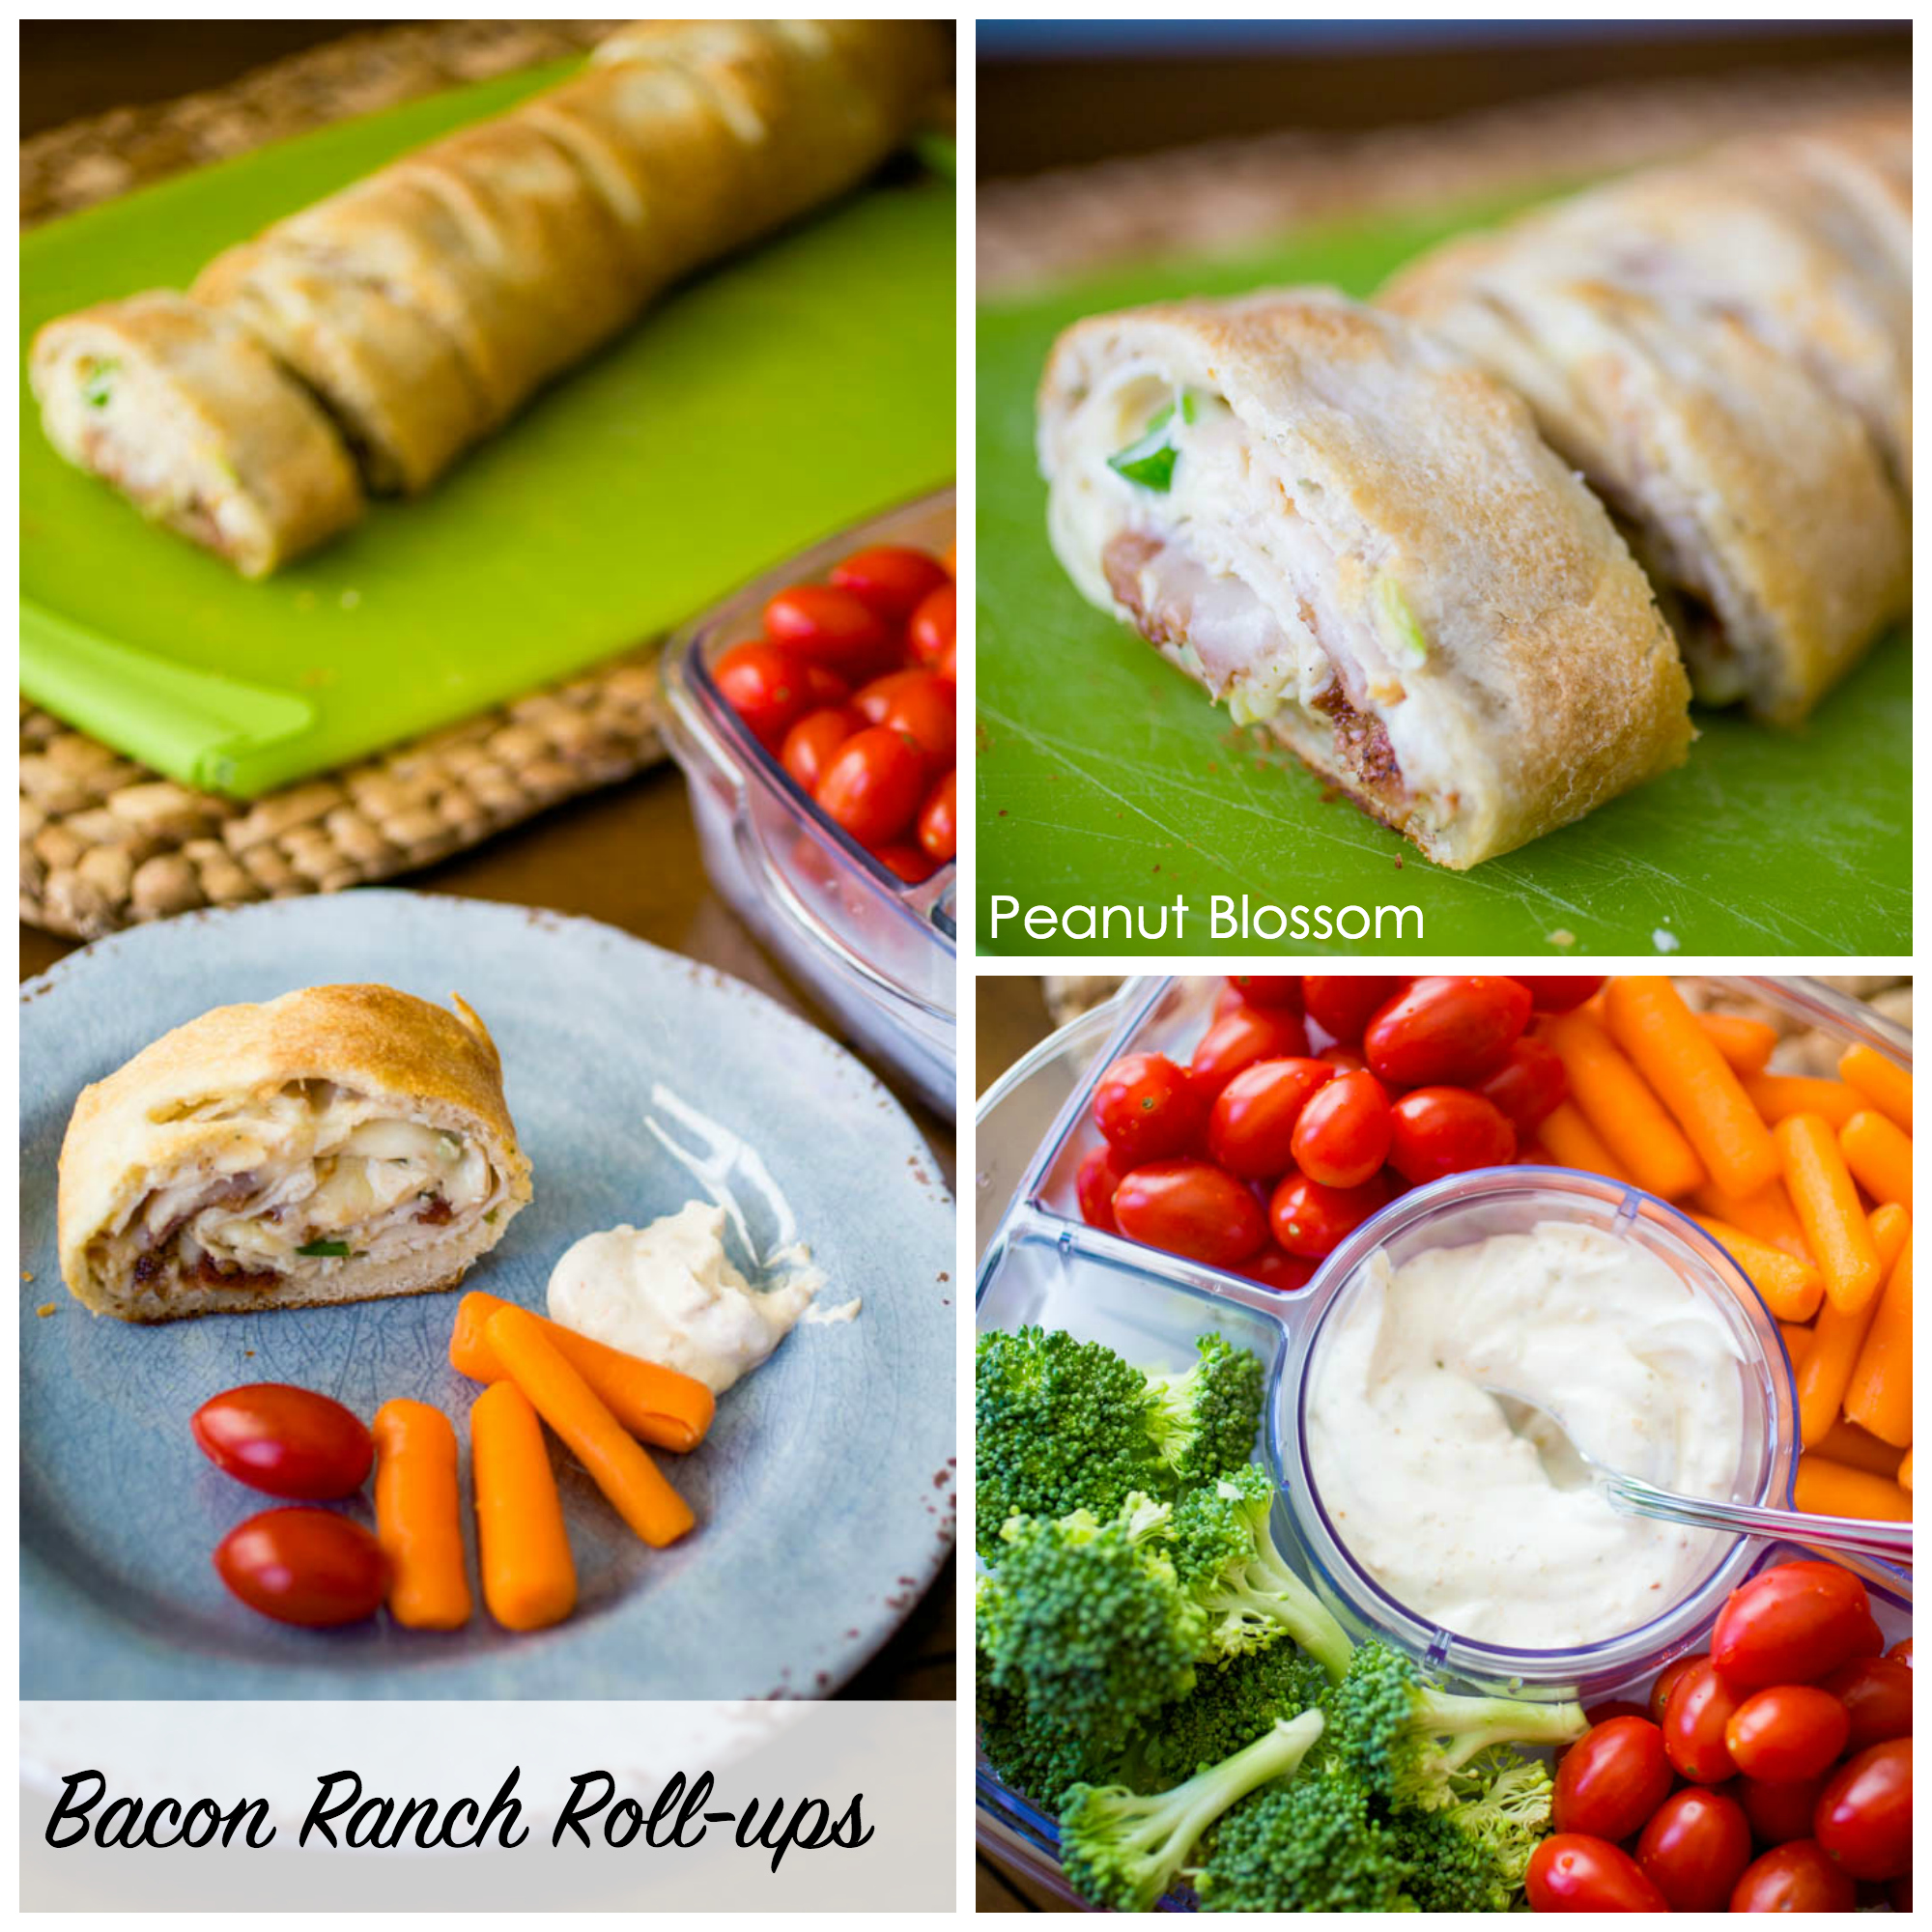 Bacon ranch cheesy chicken roll-ups